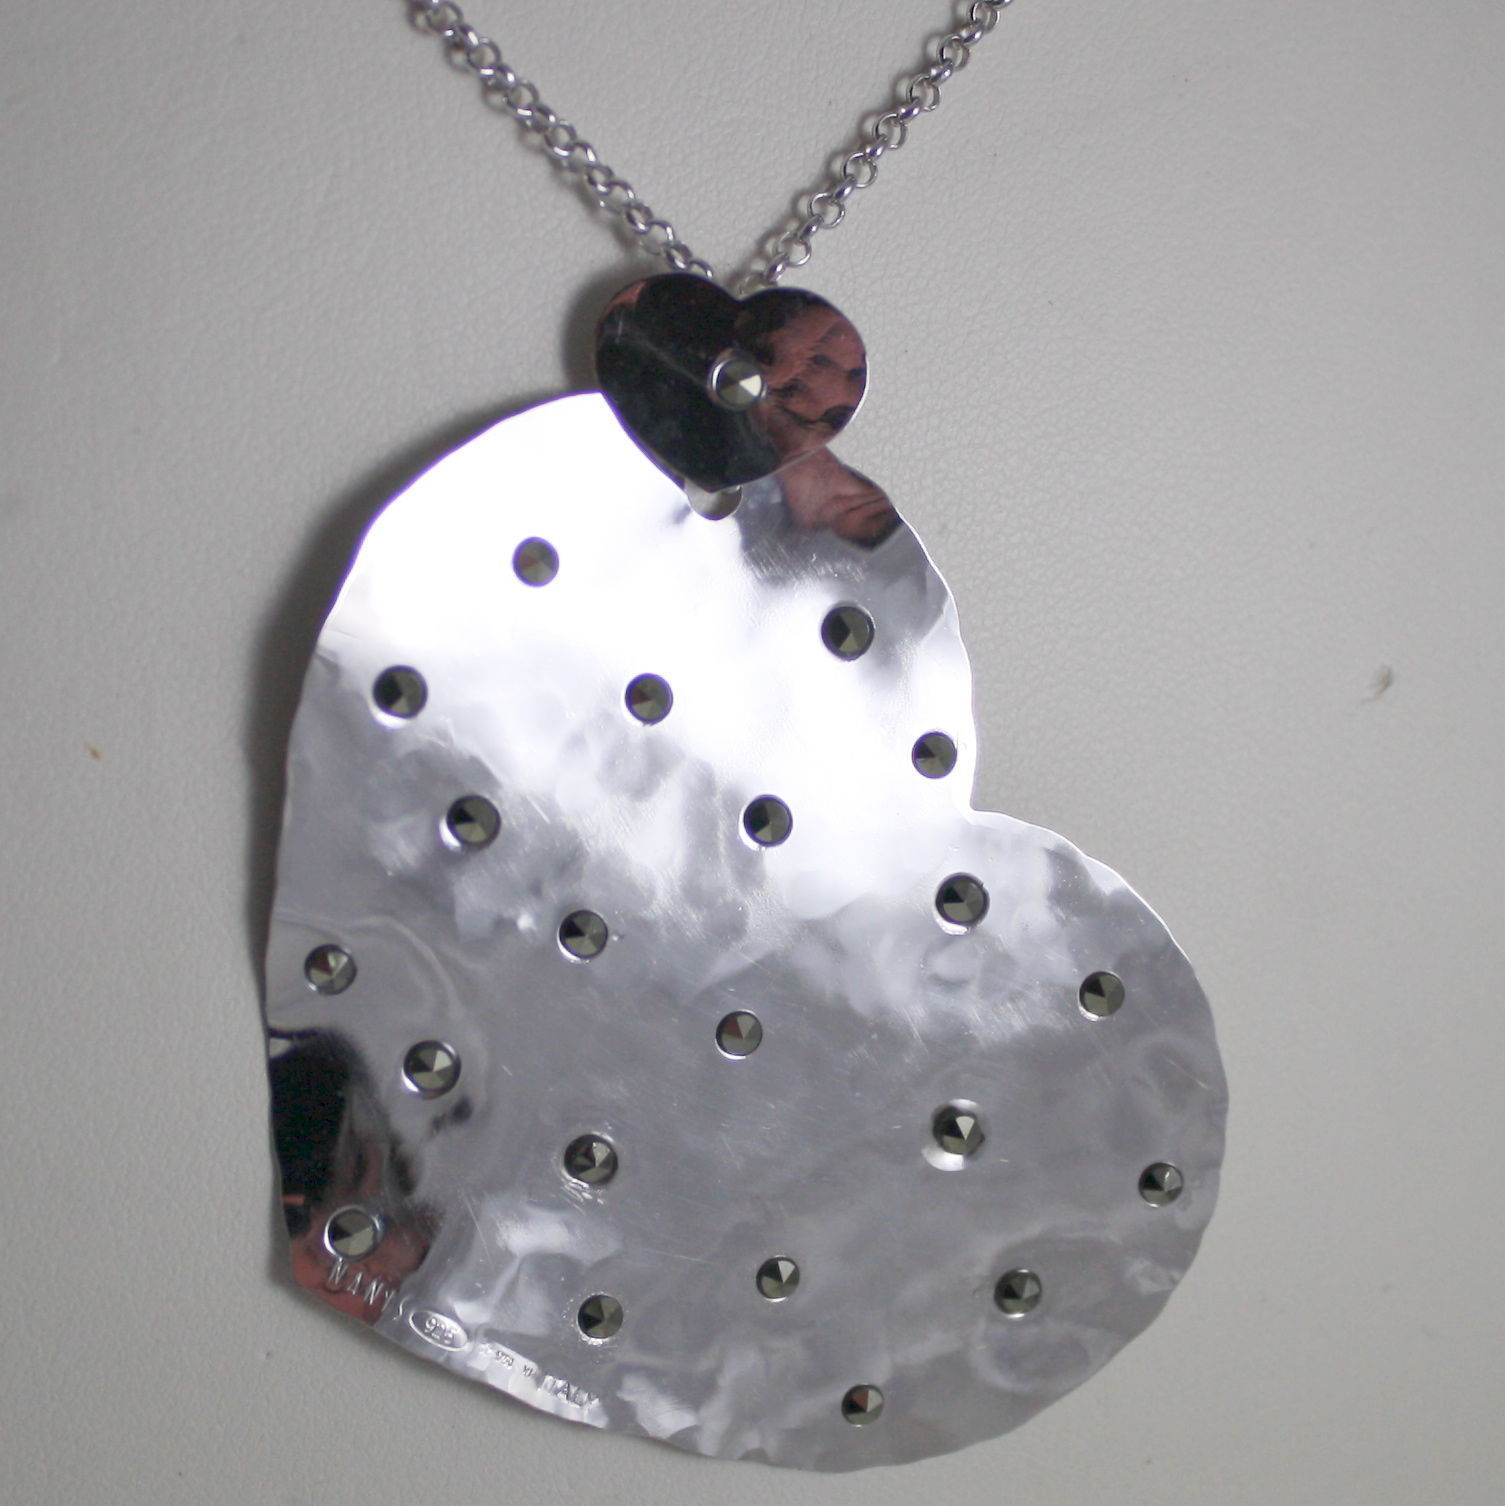 LONG NANIS NECKLACE .925 RHODIUM SILVER HEART WITH MARCASITE SATIN MADE IN ITAL